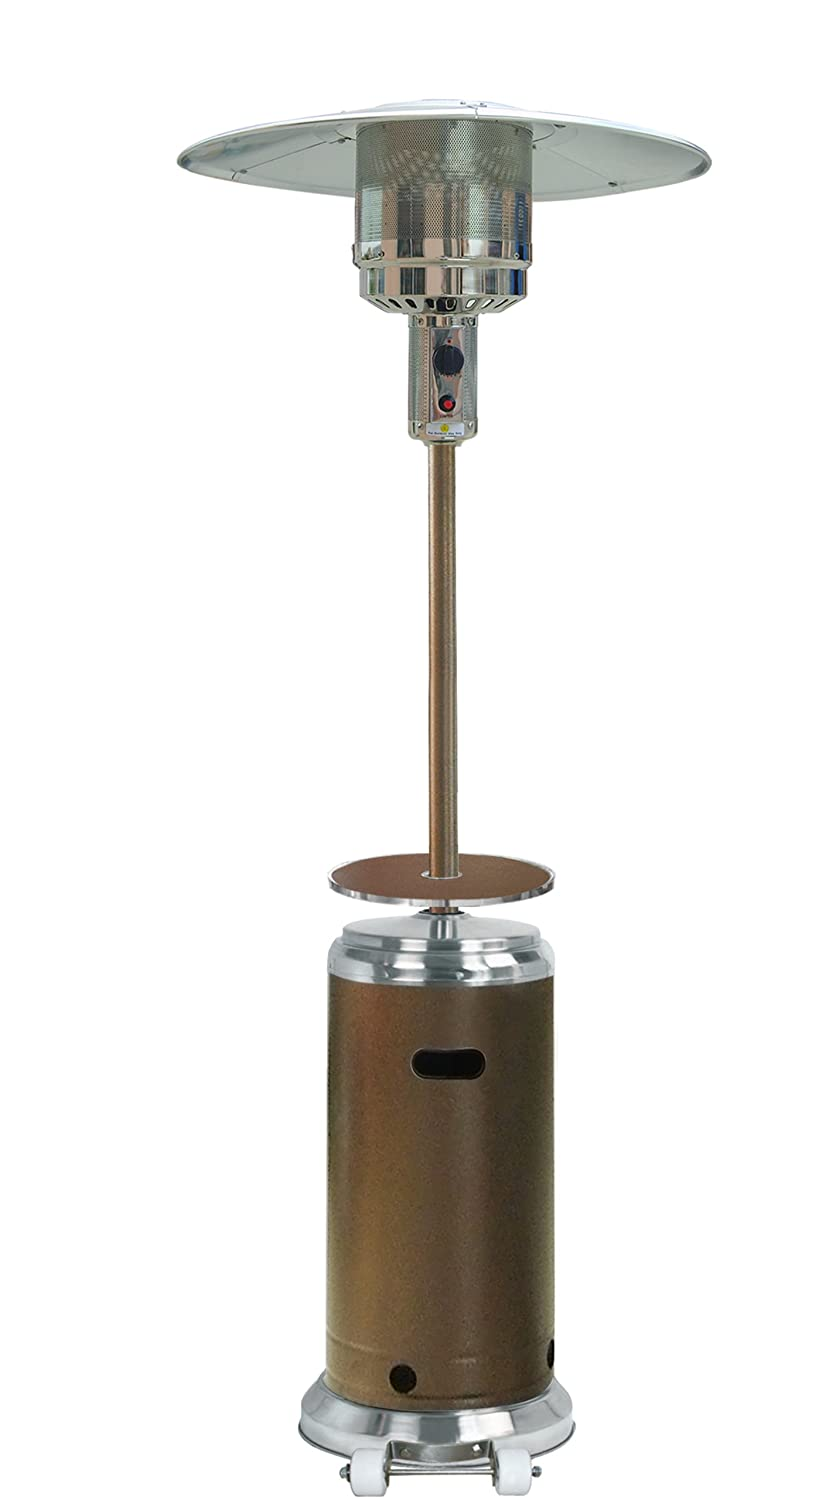 AZ Patio Heaters HLDS01-SSBLT Tall Stainless Steel Patio Heater with Table, 87-Inch, Black